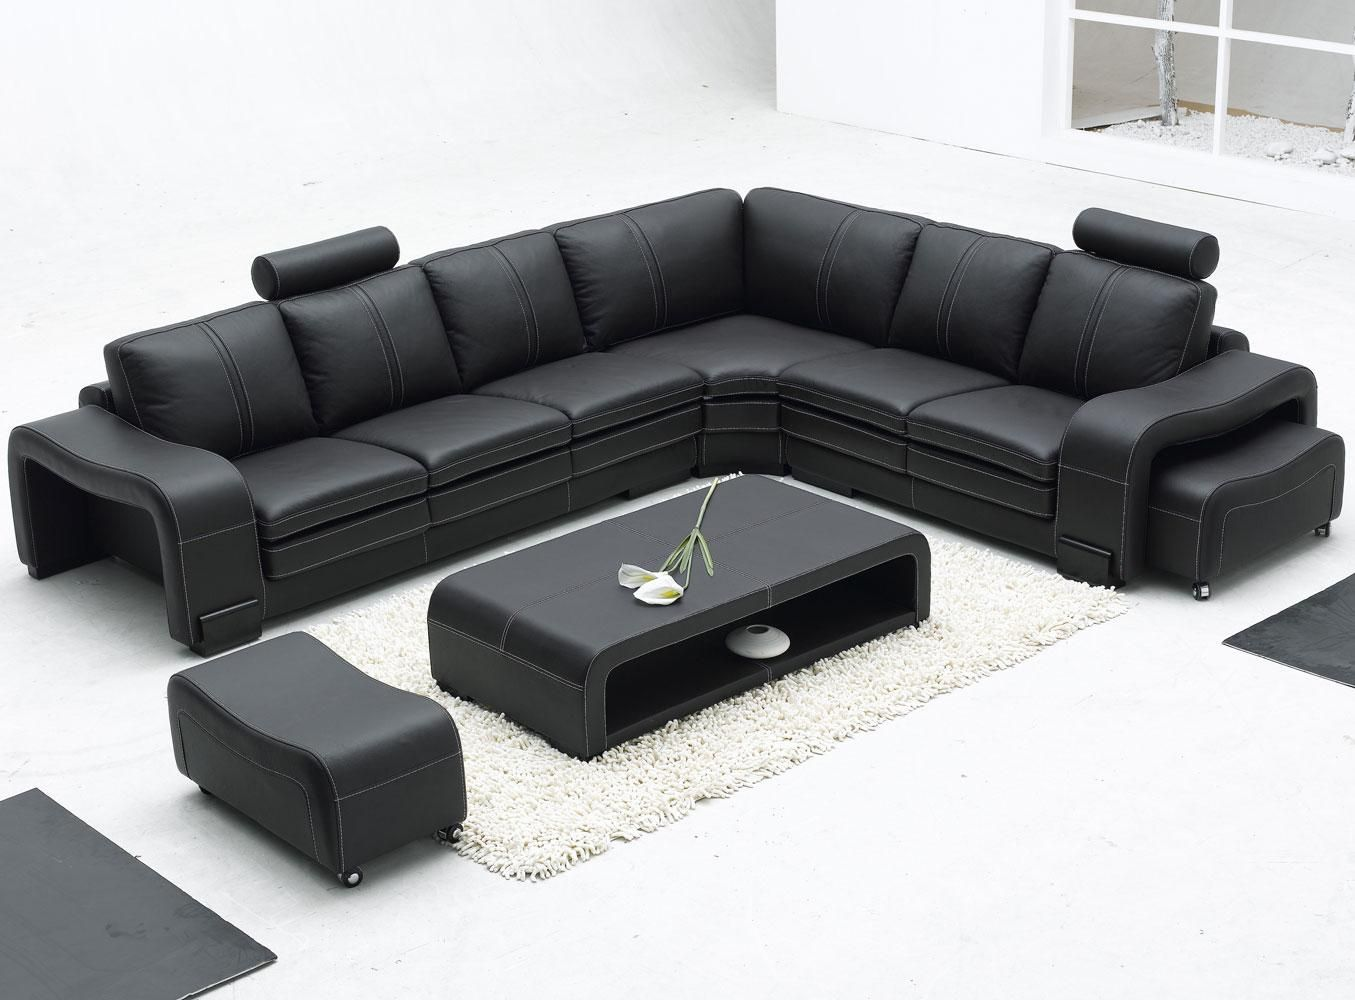 Awesome Sectional Leather Sofa New Sectional Leather Sofa 56 For Your Sofa Room Ideas With Leather Corner Sofa Modern Leather Sectional Sofas Sectional Sofa